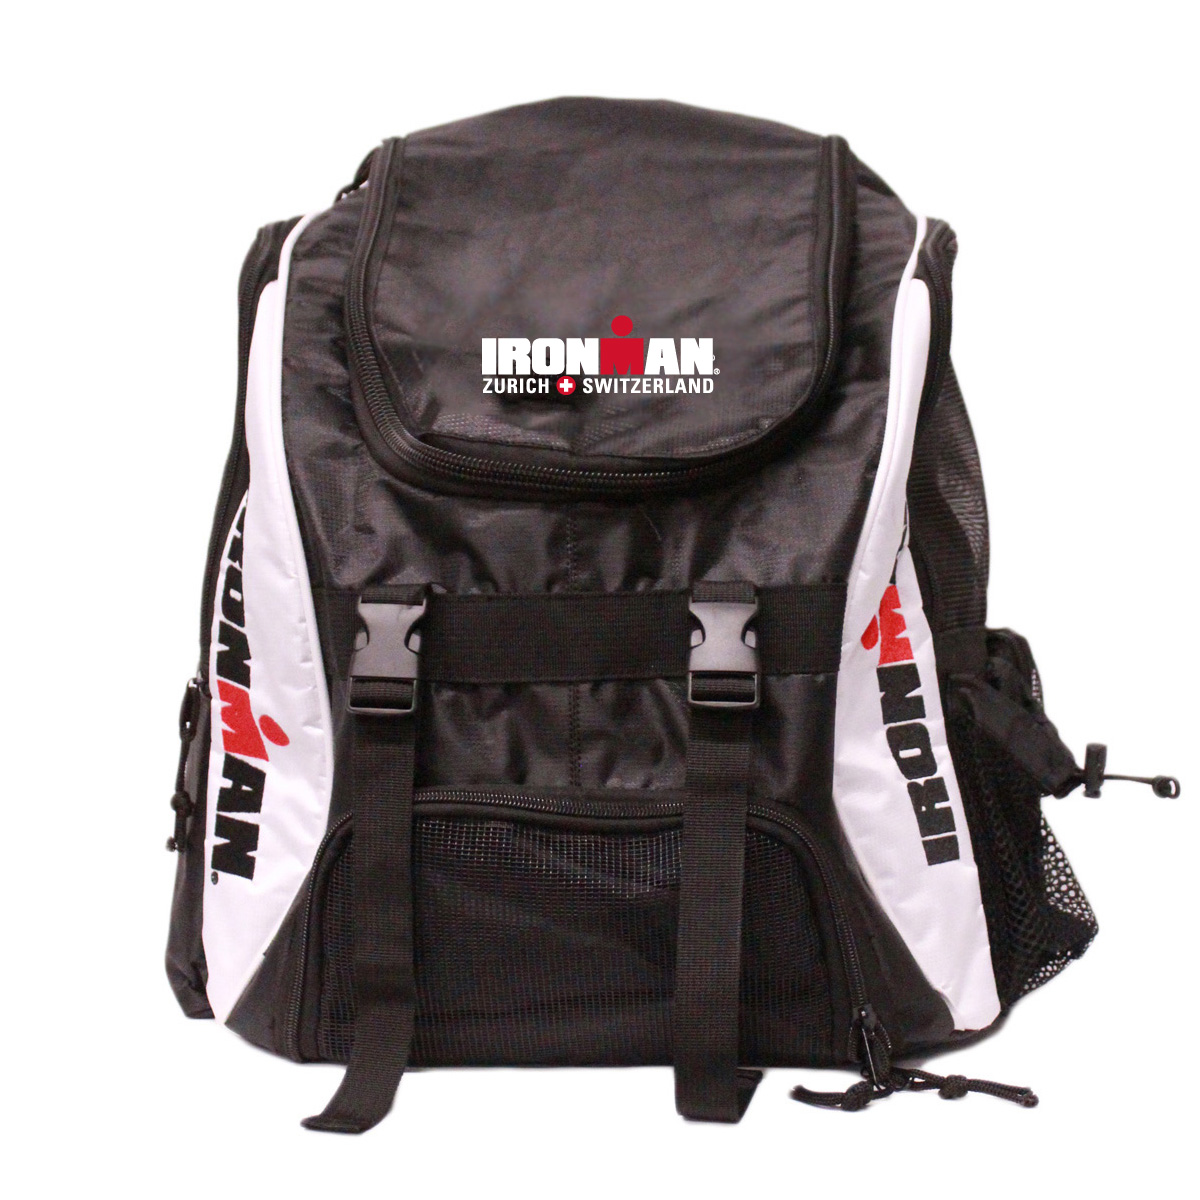 IRONMAN SWITZERLAND 2019 EVENT BACKPACK